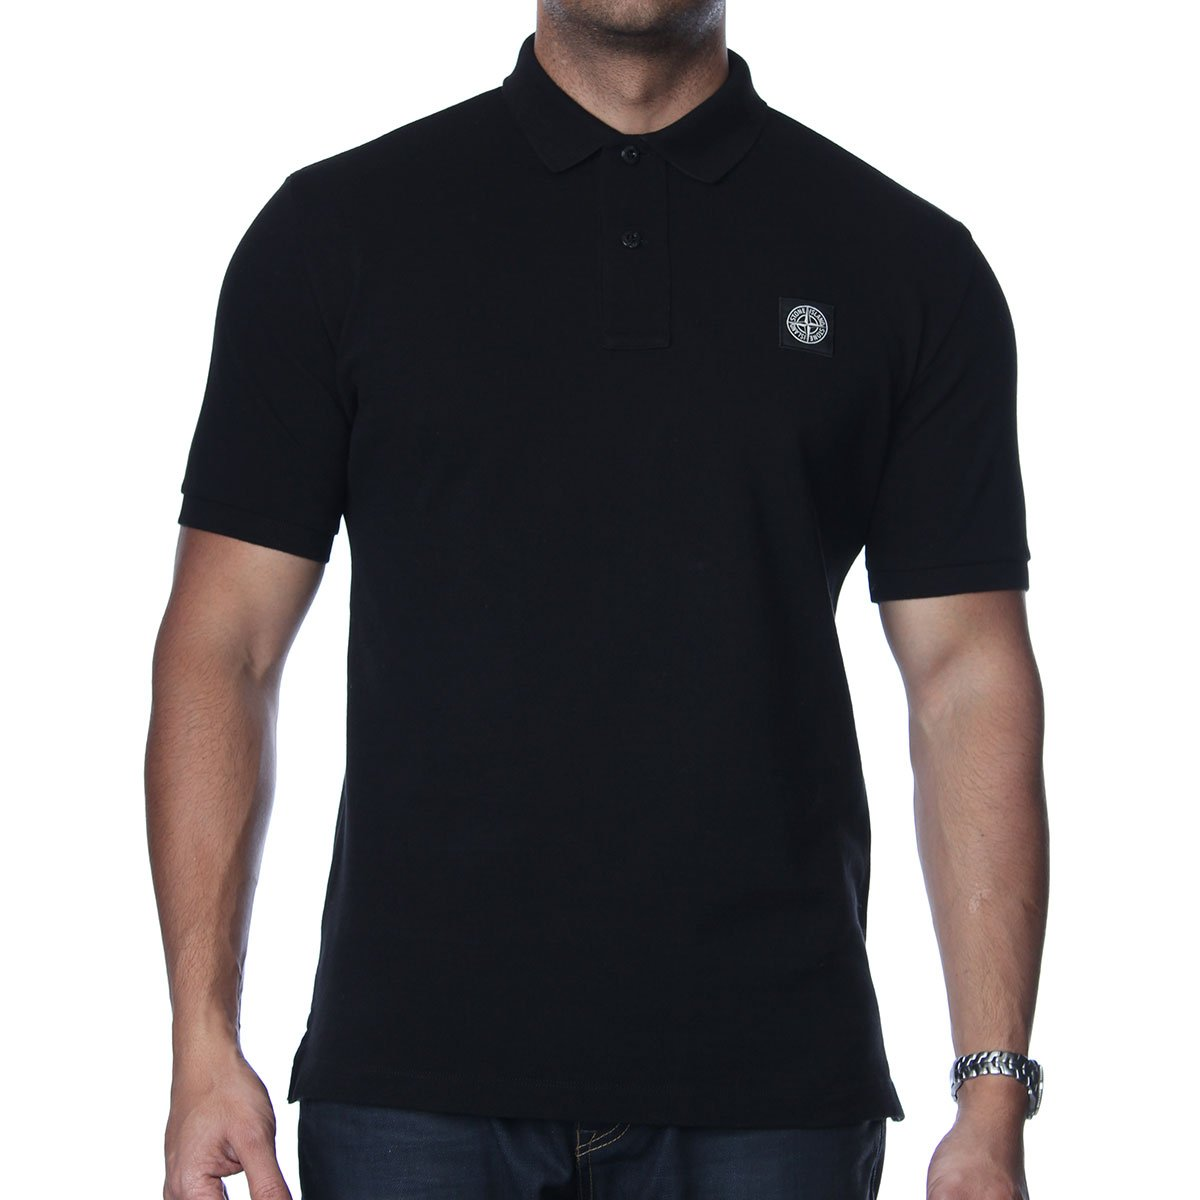 stone island regular fit polo shirt stone island from the menswear site uk. Black Bedroom Furniture Sets. Home Design Ideas